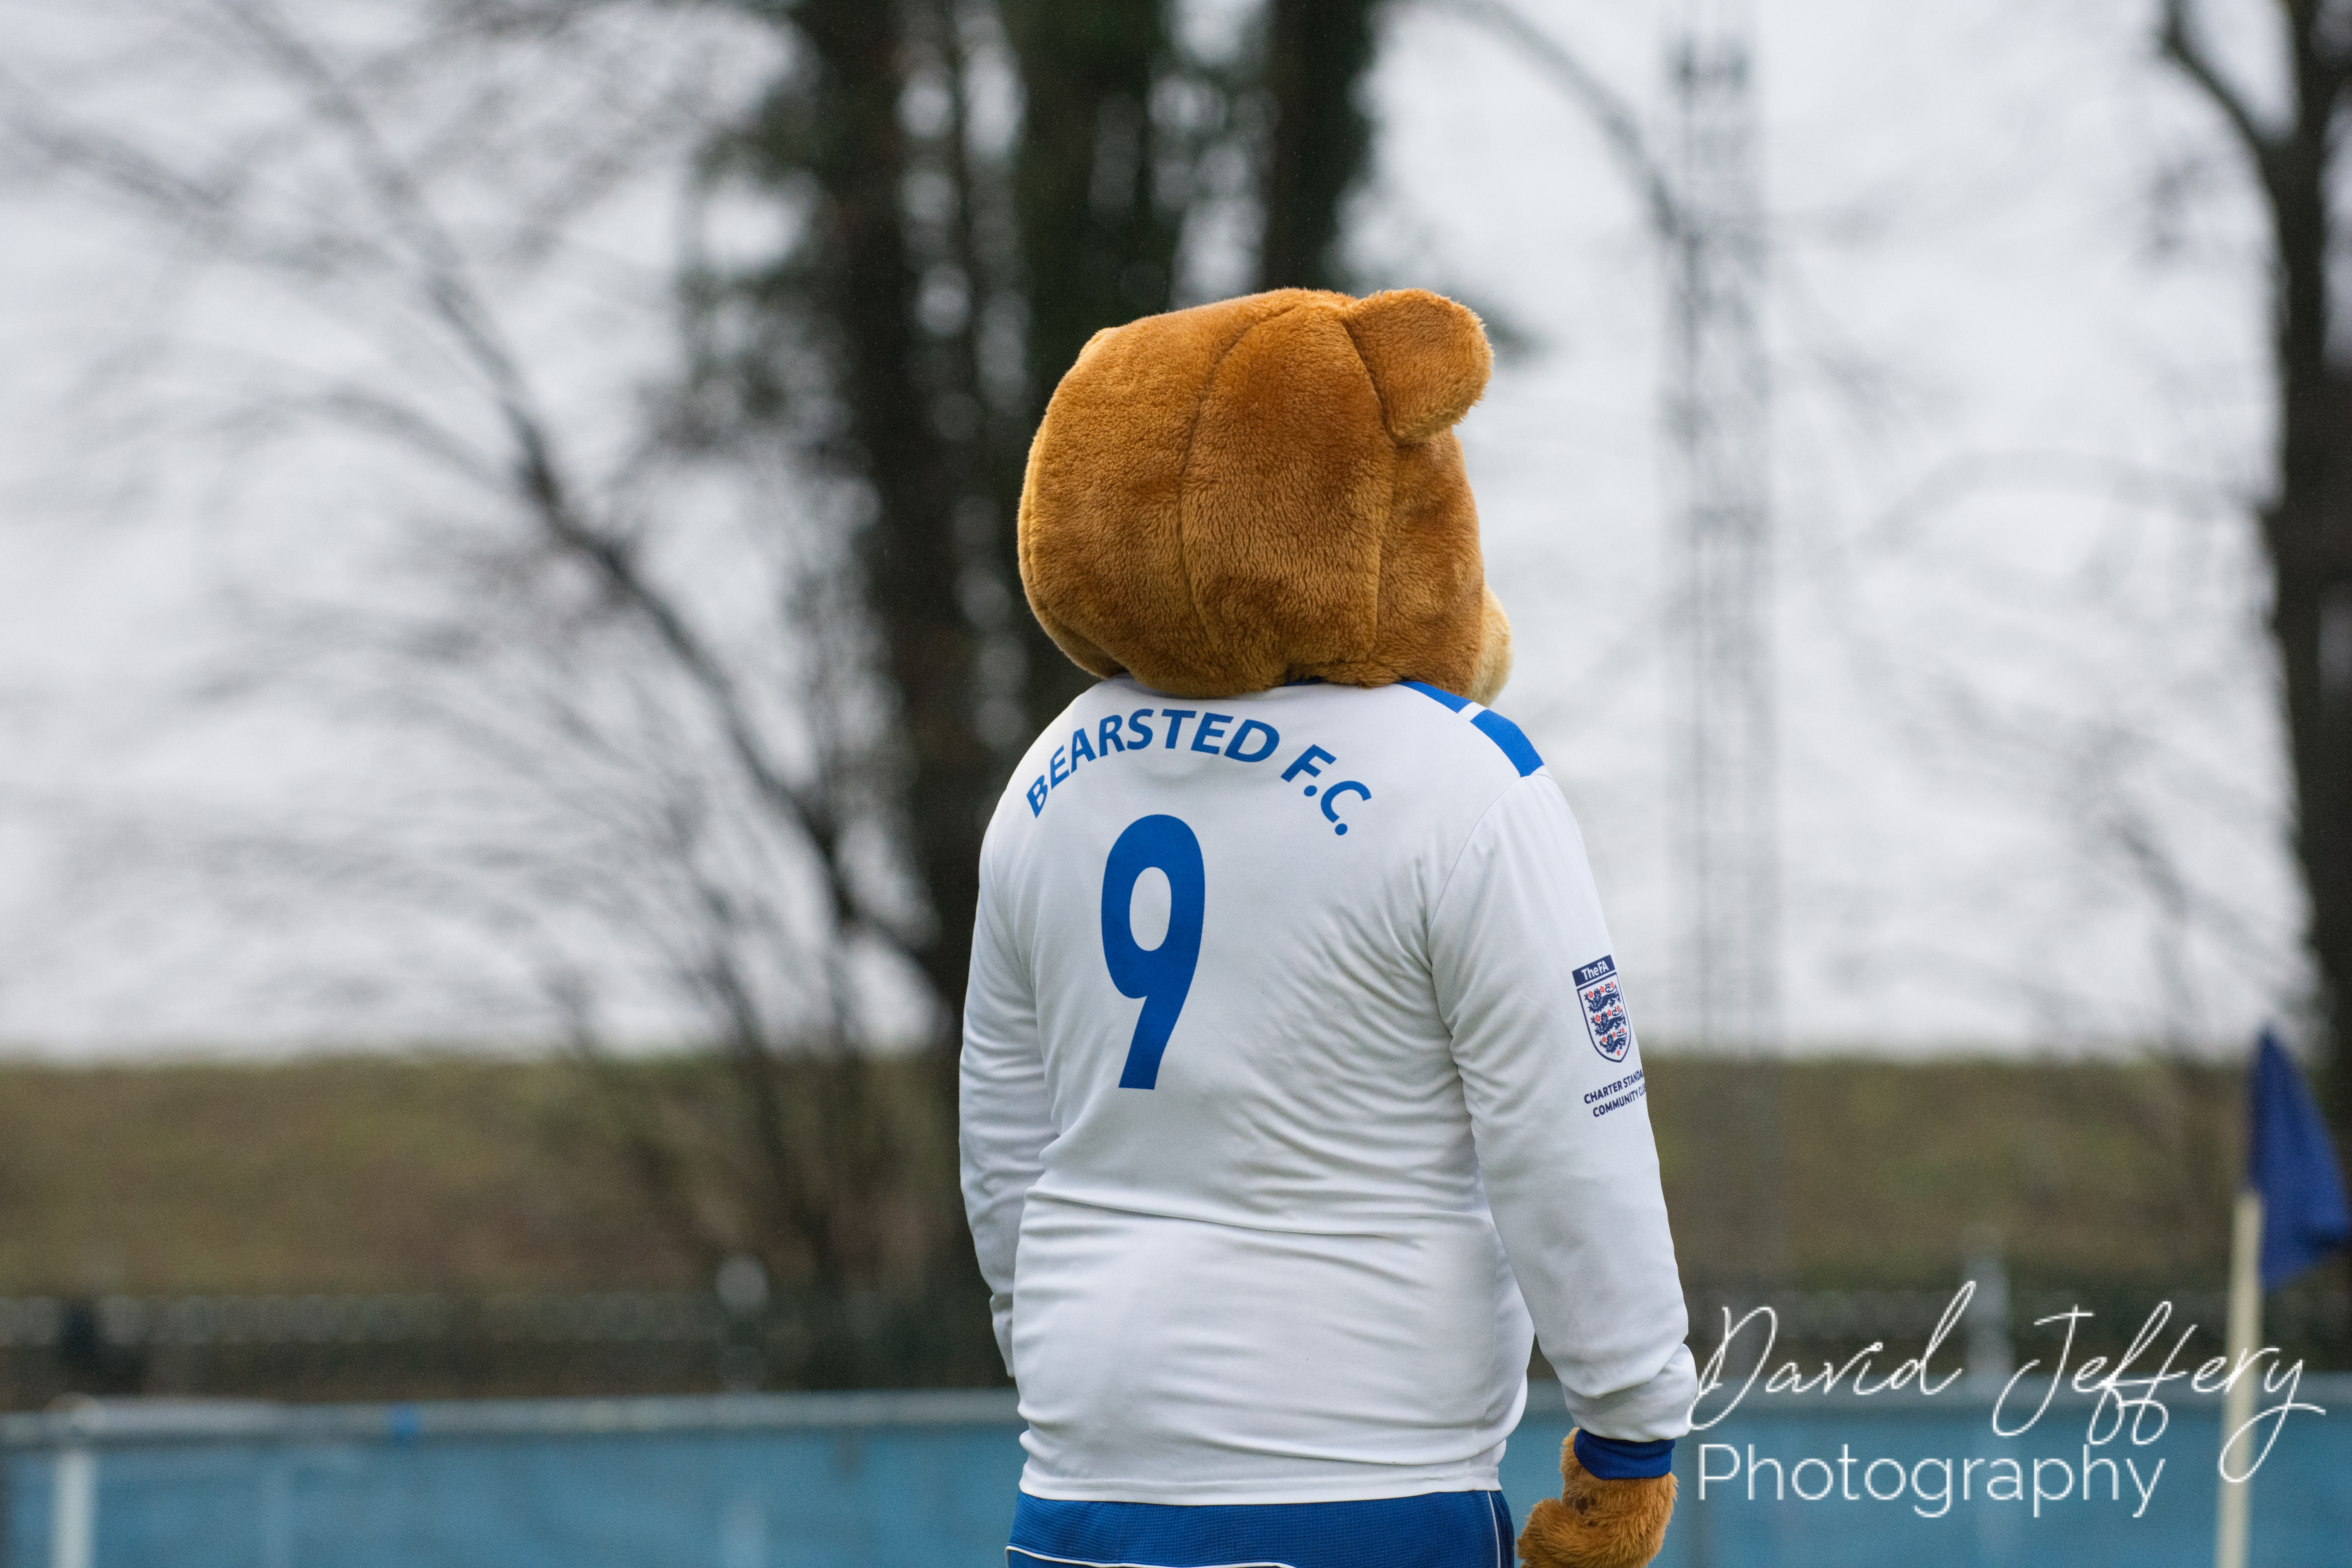 DAVID_JEFFERY Bear vs Stey 01.12.18 026.